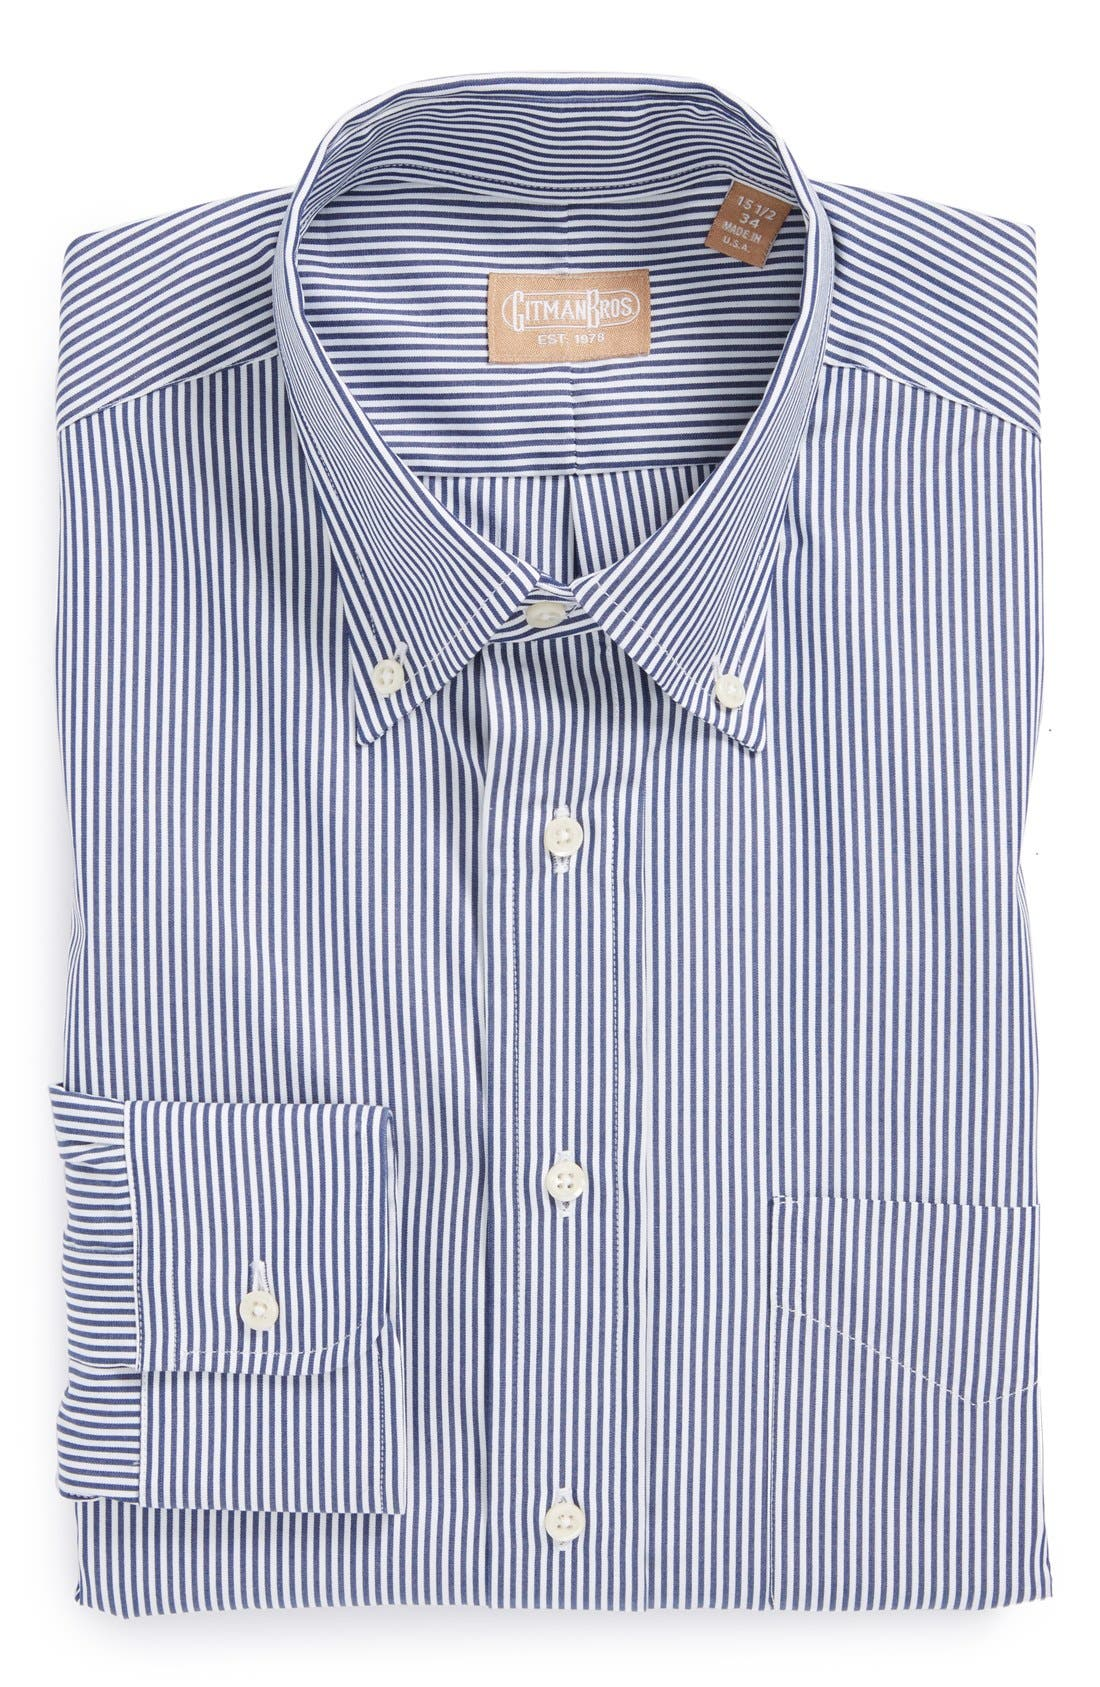 GITMAN Regular Fit Bengal Stripe Cotton Broadcloth Button